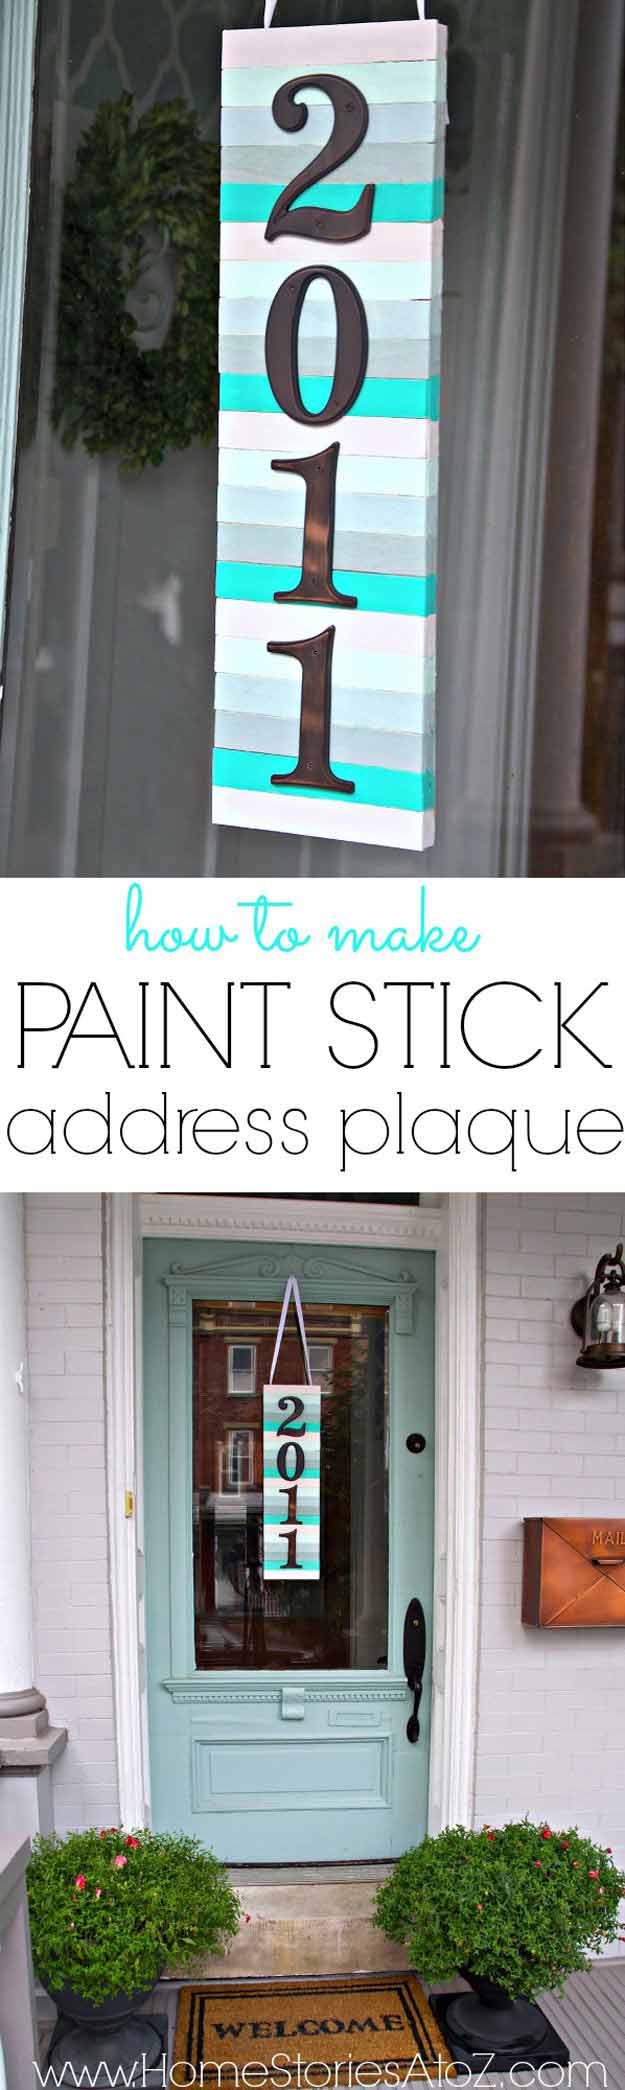 DIY Address Plaque | 17 Amazing DIY Paint Chip Projects